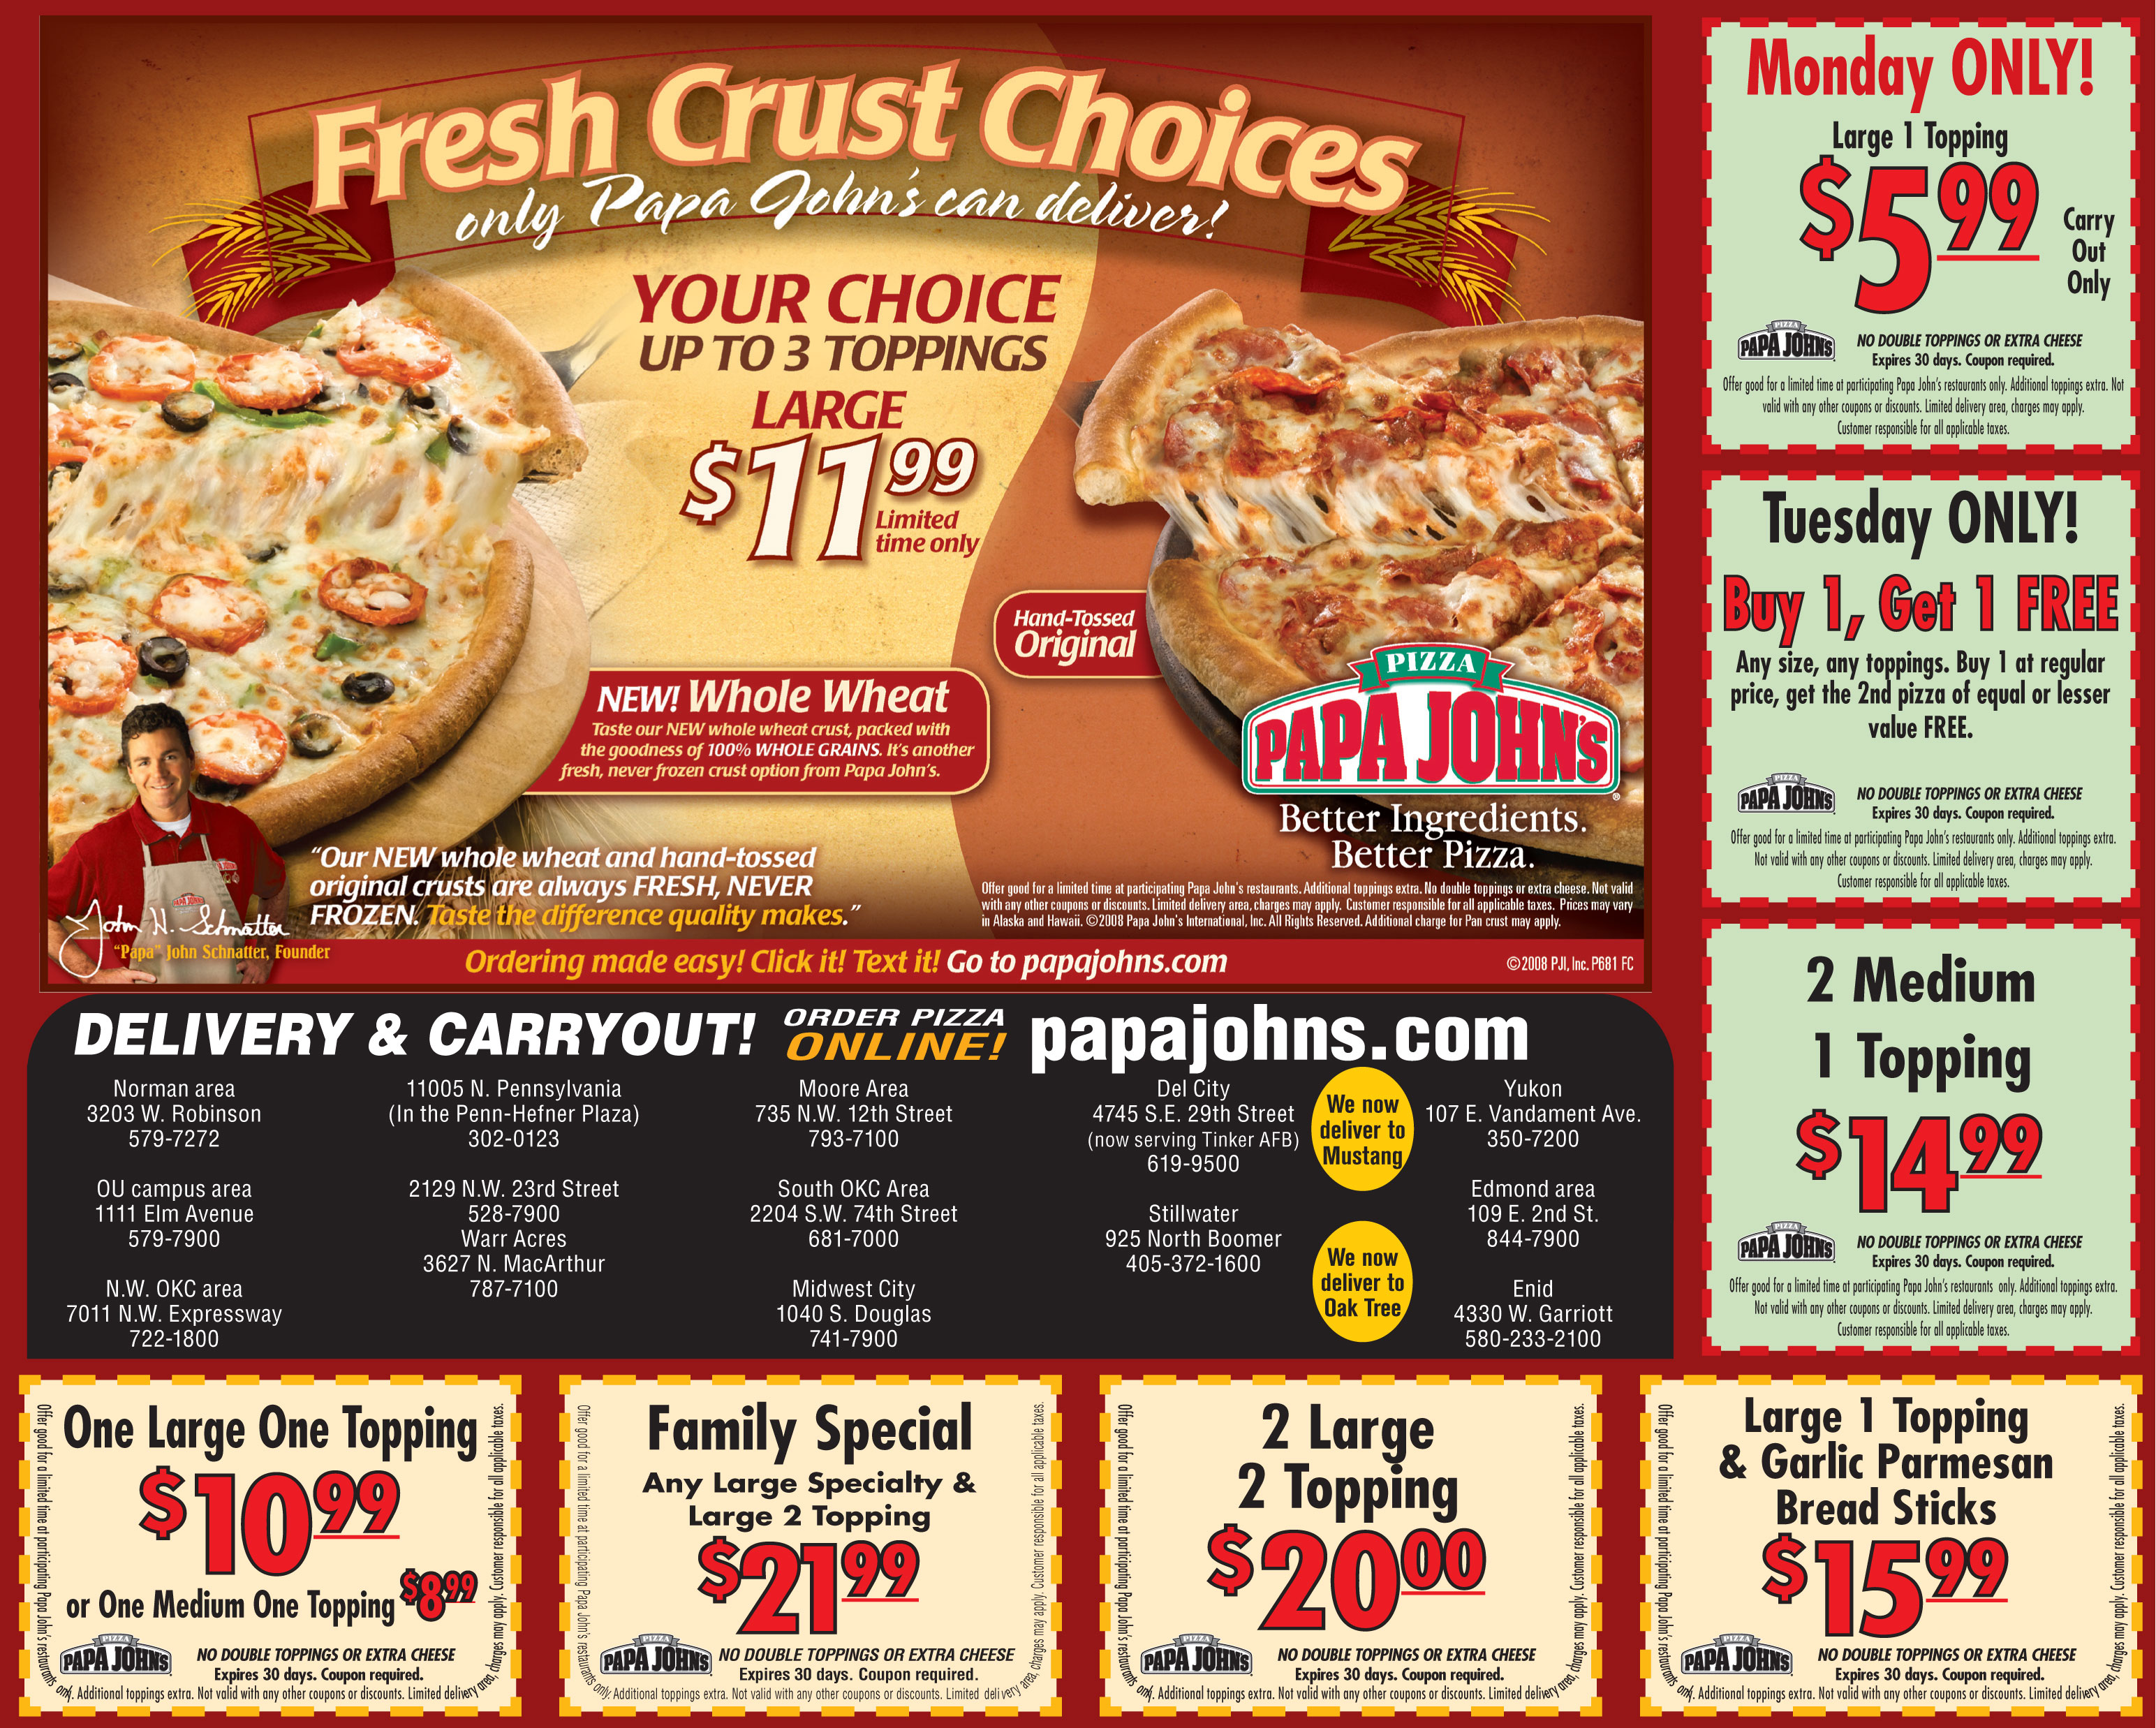 Papa Johns Coupons - December ; Papa Johns Coupons If you're pre-paying for your order and if your order is eligible for it, you will be able to use your Papa John's promo code simply by copying and pasting it as indicated. Enter other details as directed and confirm your order.4/5(2).